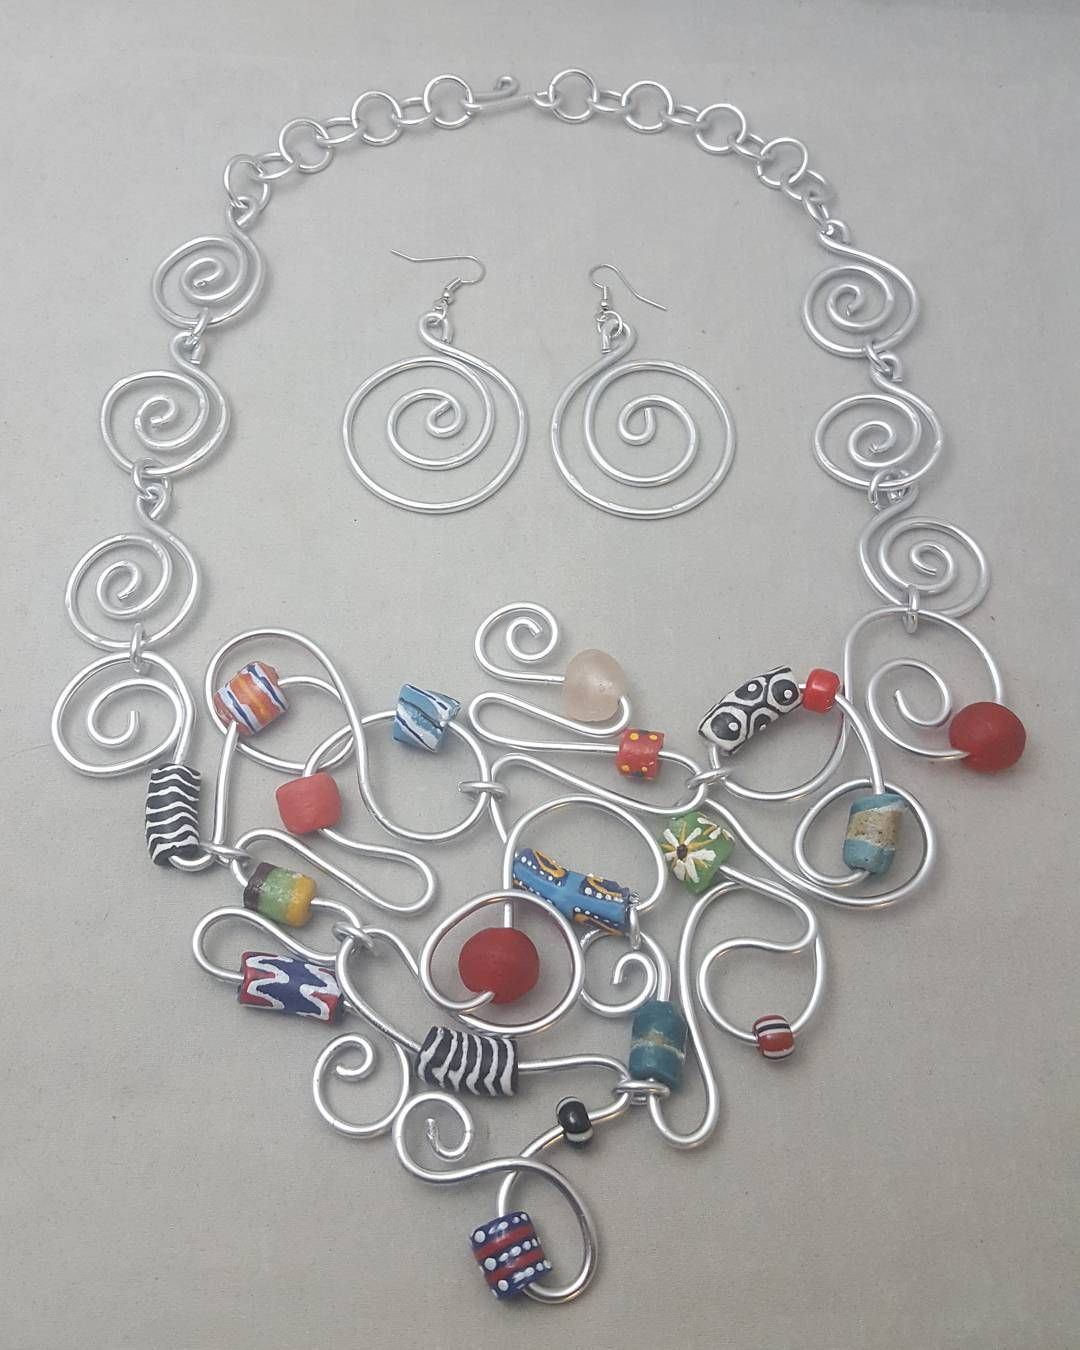 Pin by Rita White on Aluminum Wire Jewelry   Pinterest   Wire ...